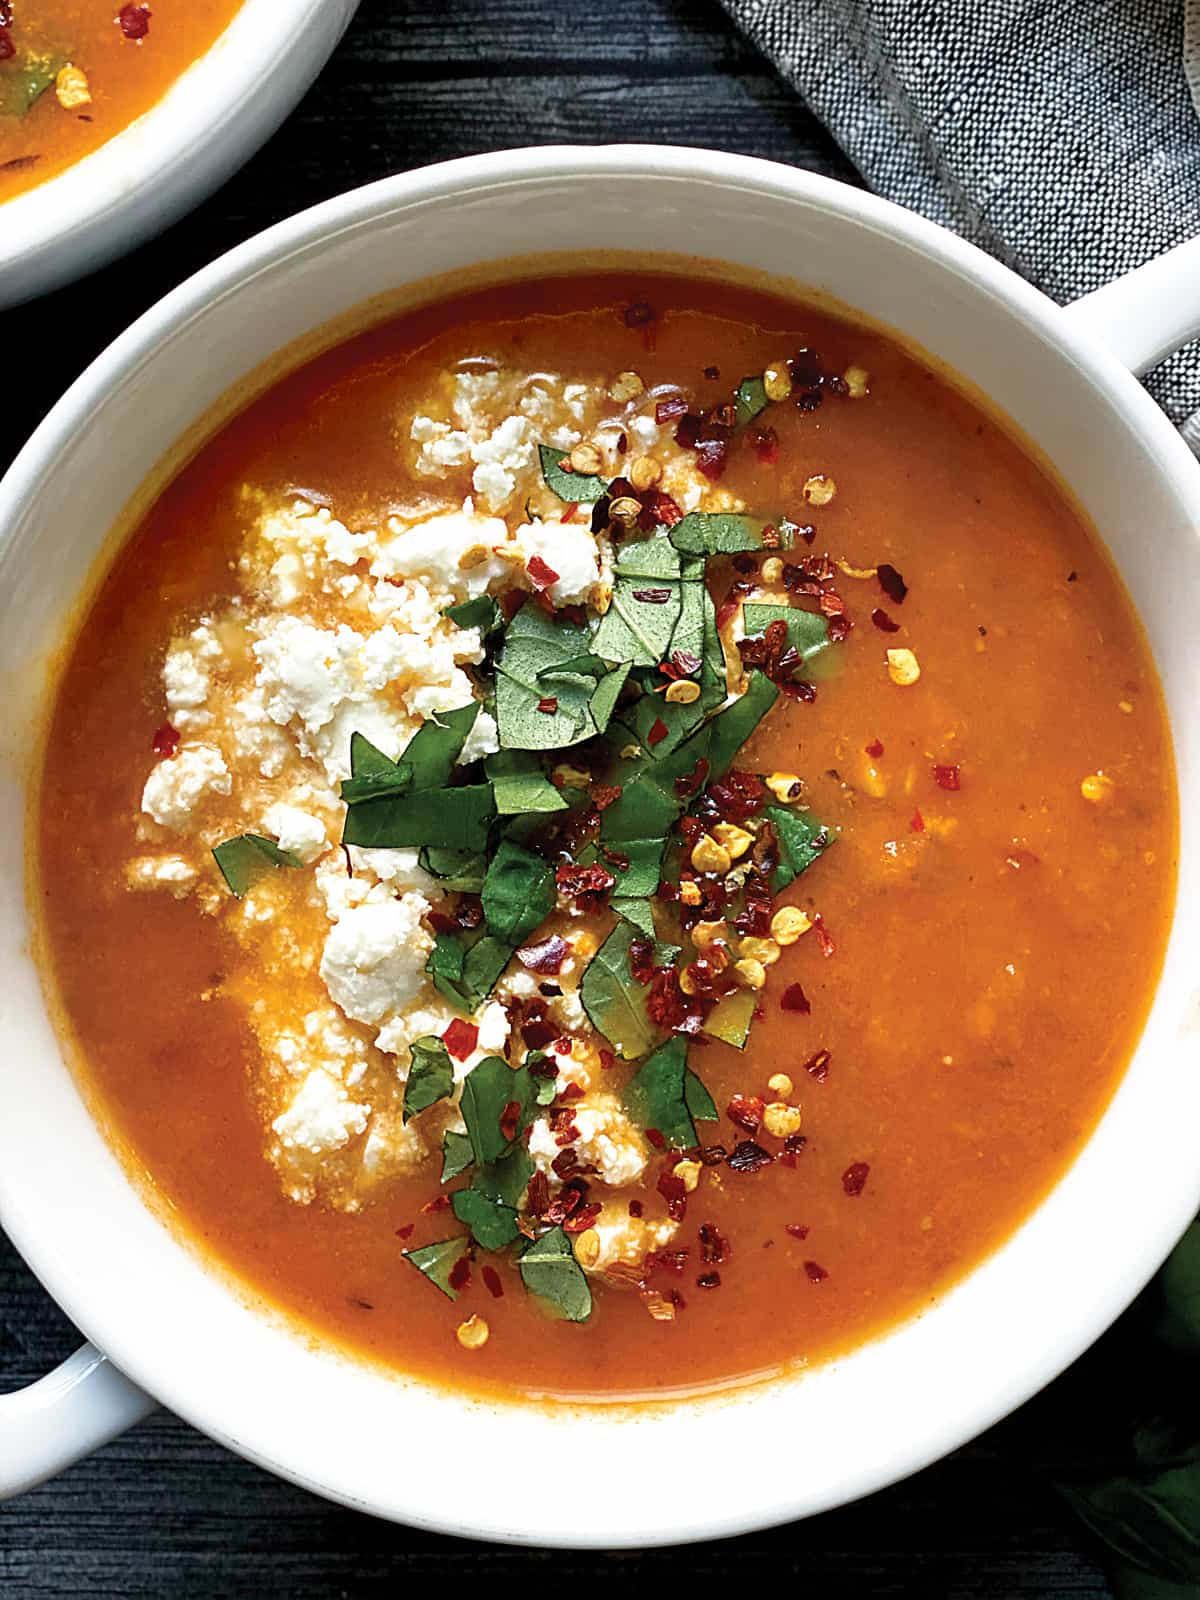 Bowl with tomato soup with basil and feta cheese.